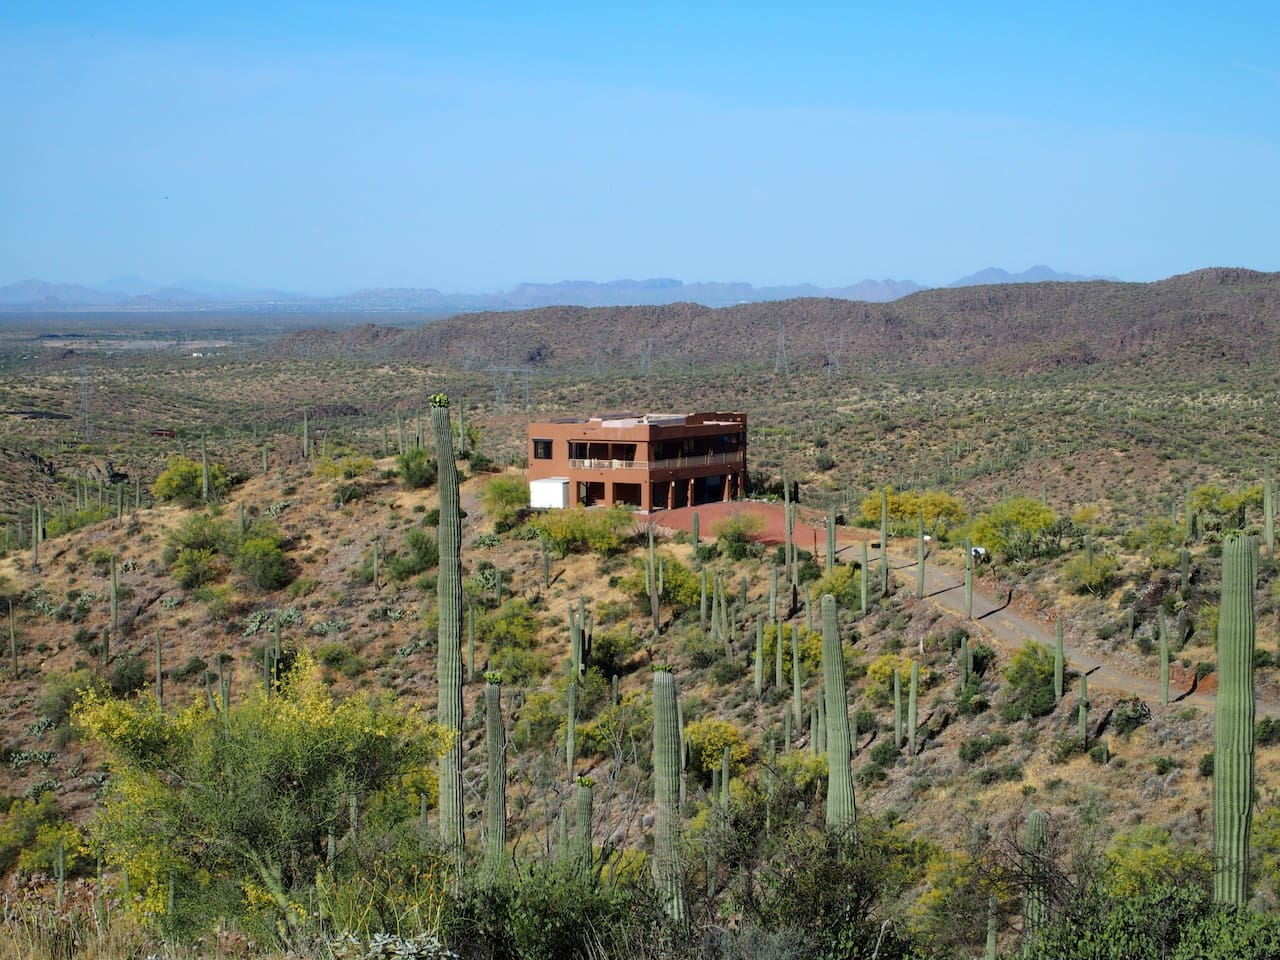 Jumping Dog Vista sits on 40 acres overlooking Superstition Wilderness